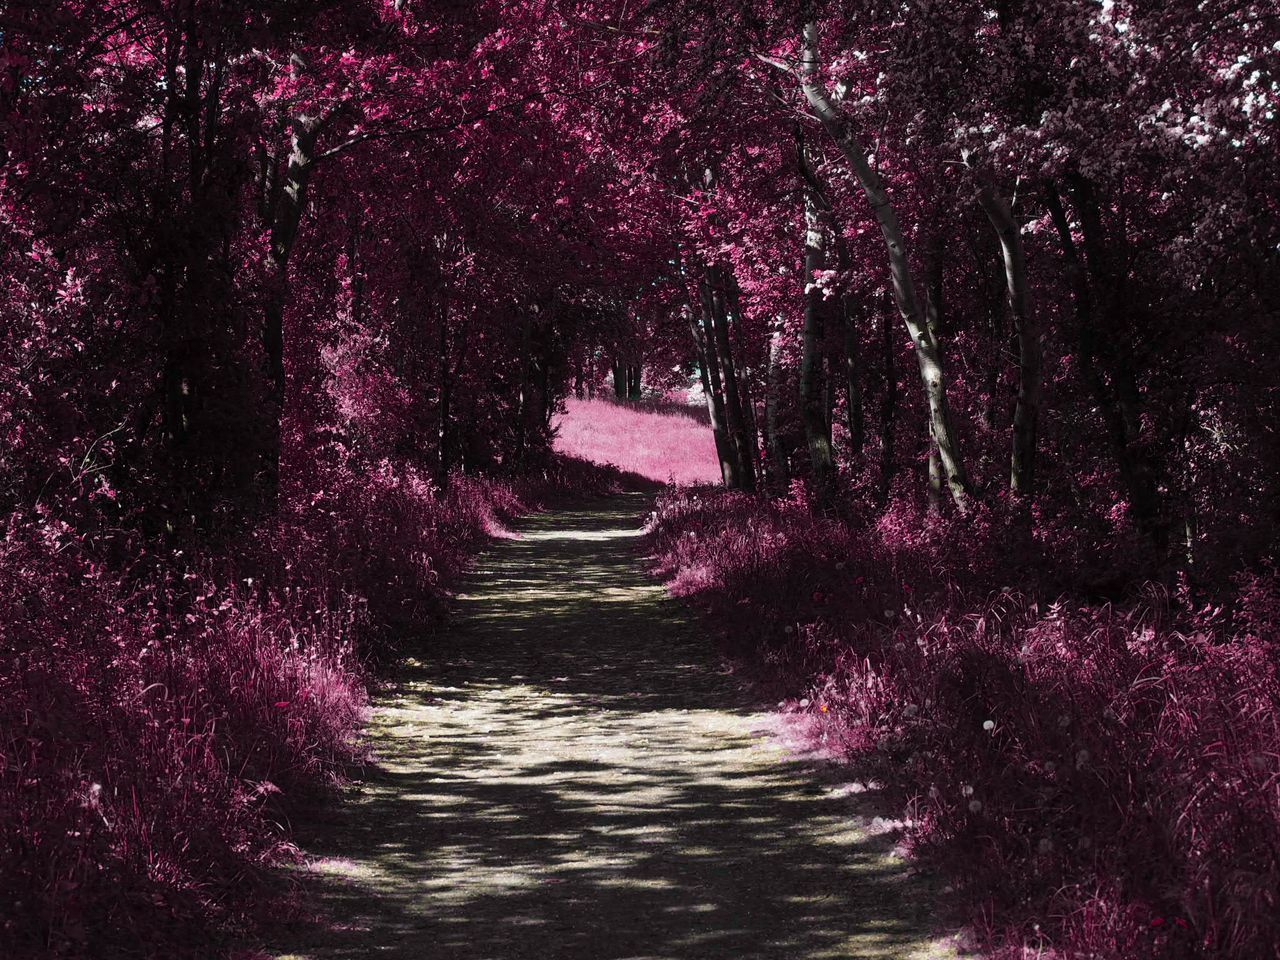 SCENIC VIEW OF PINK AND TREES IN FOREST